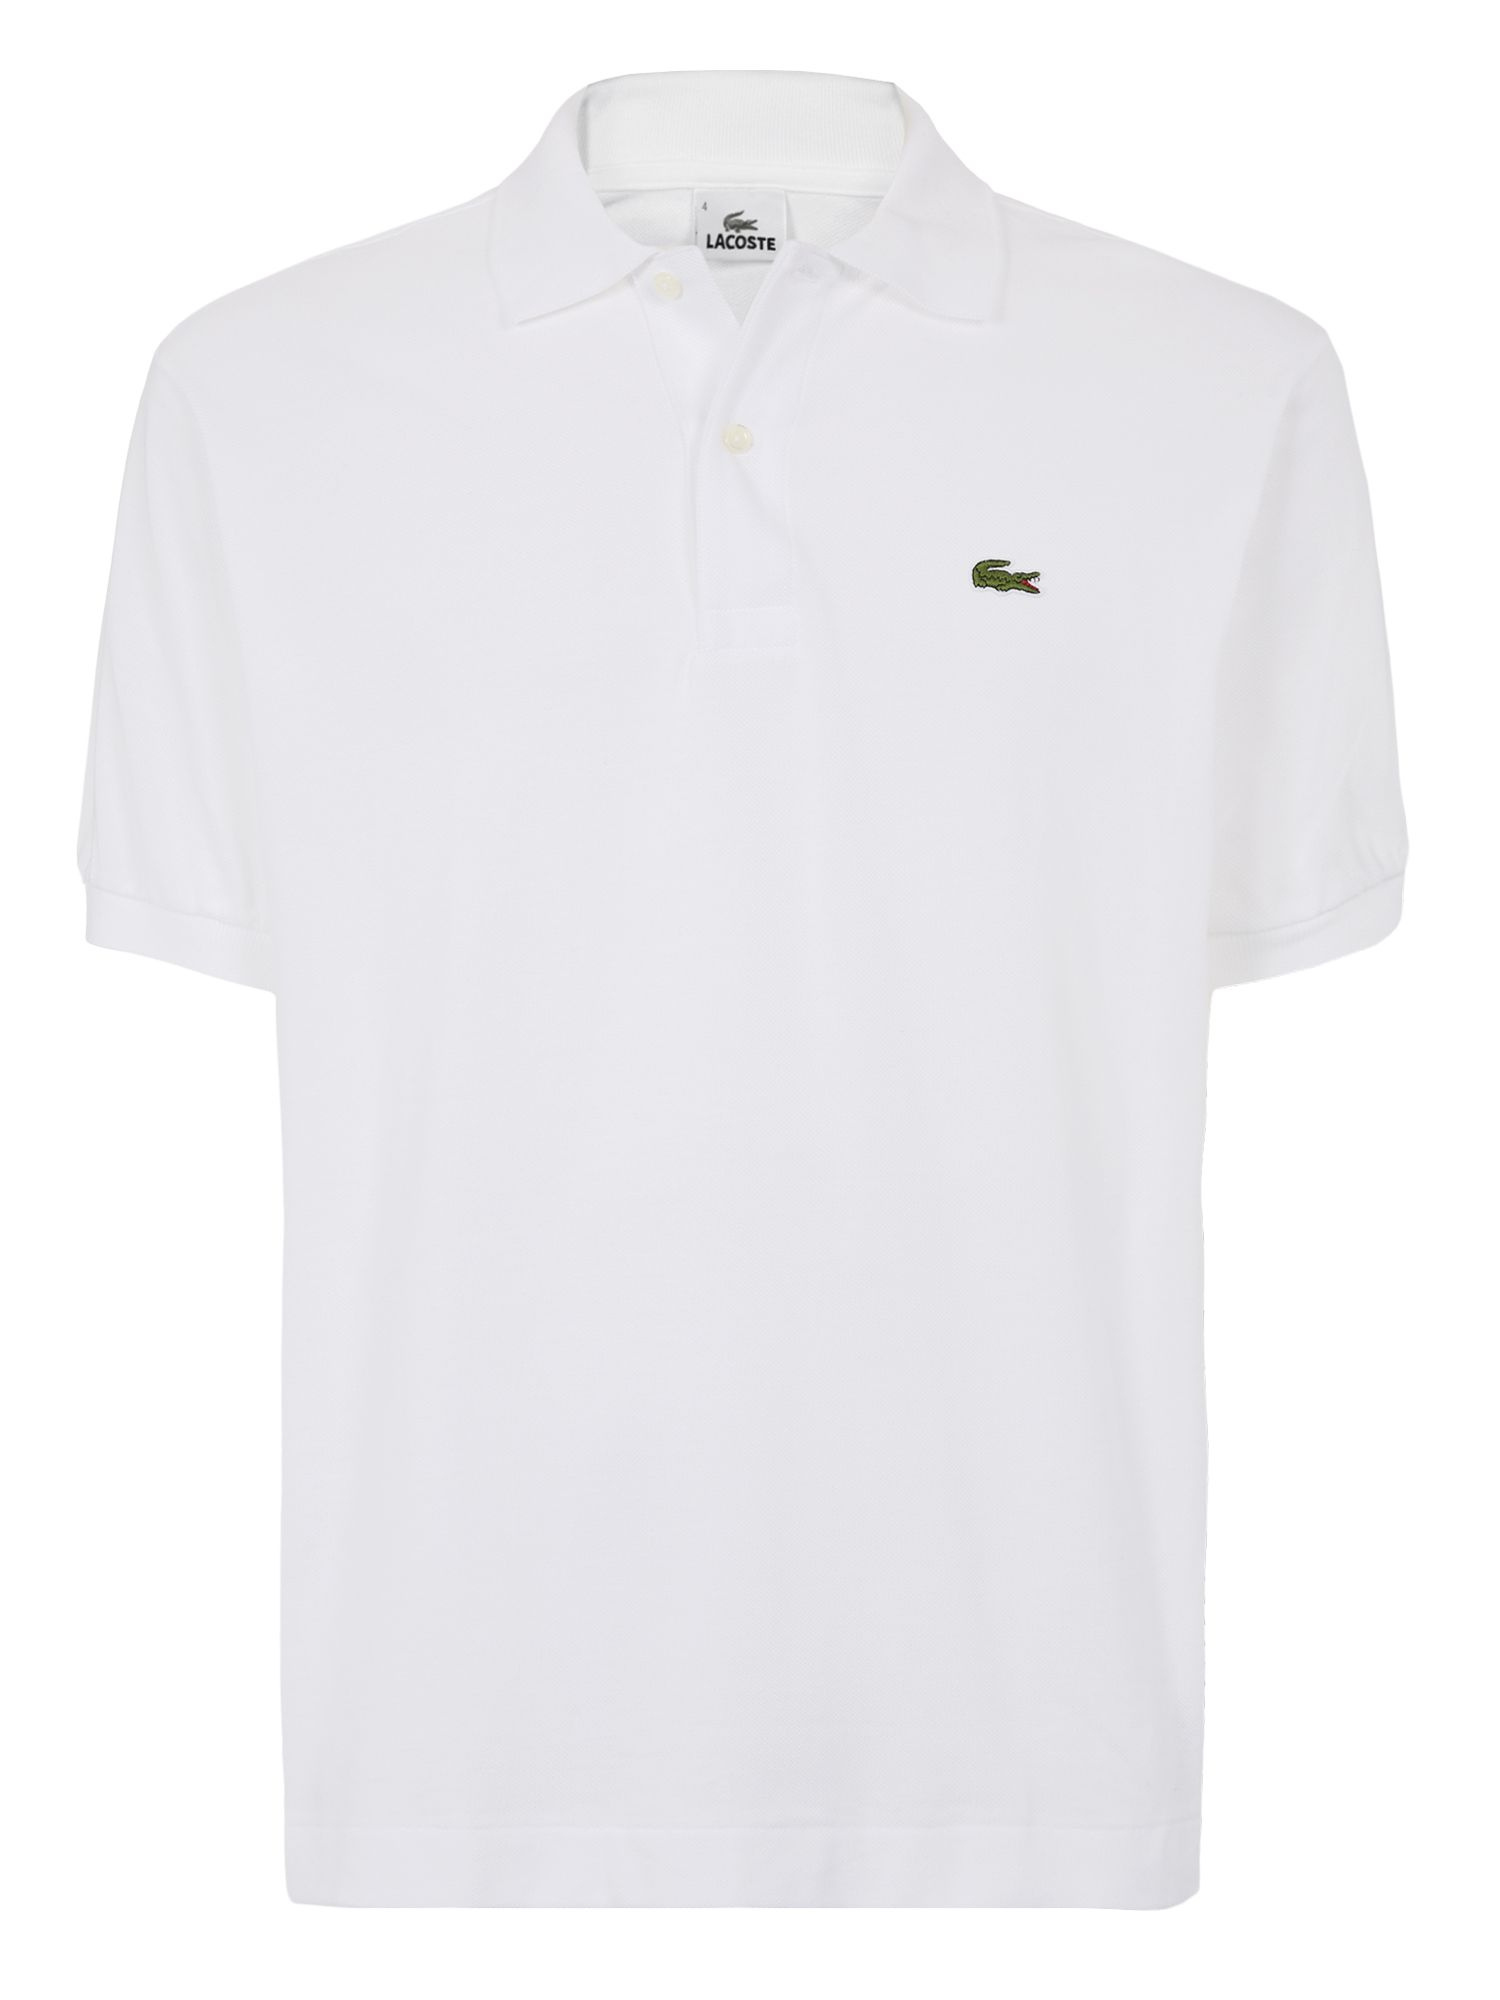 lacoste classic polo shirt in white for men save. Black Bedroom Furniture Sets. Home Design Ideas